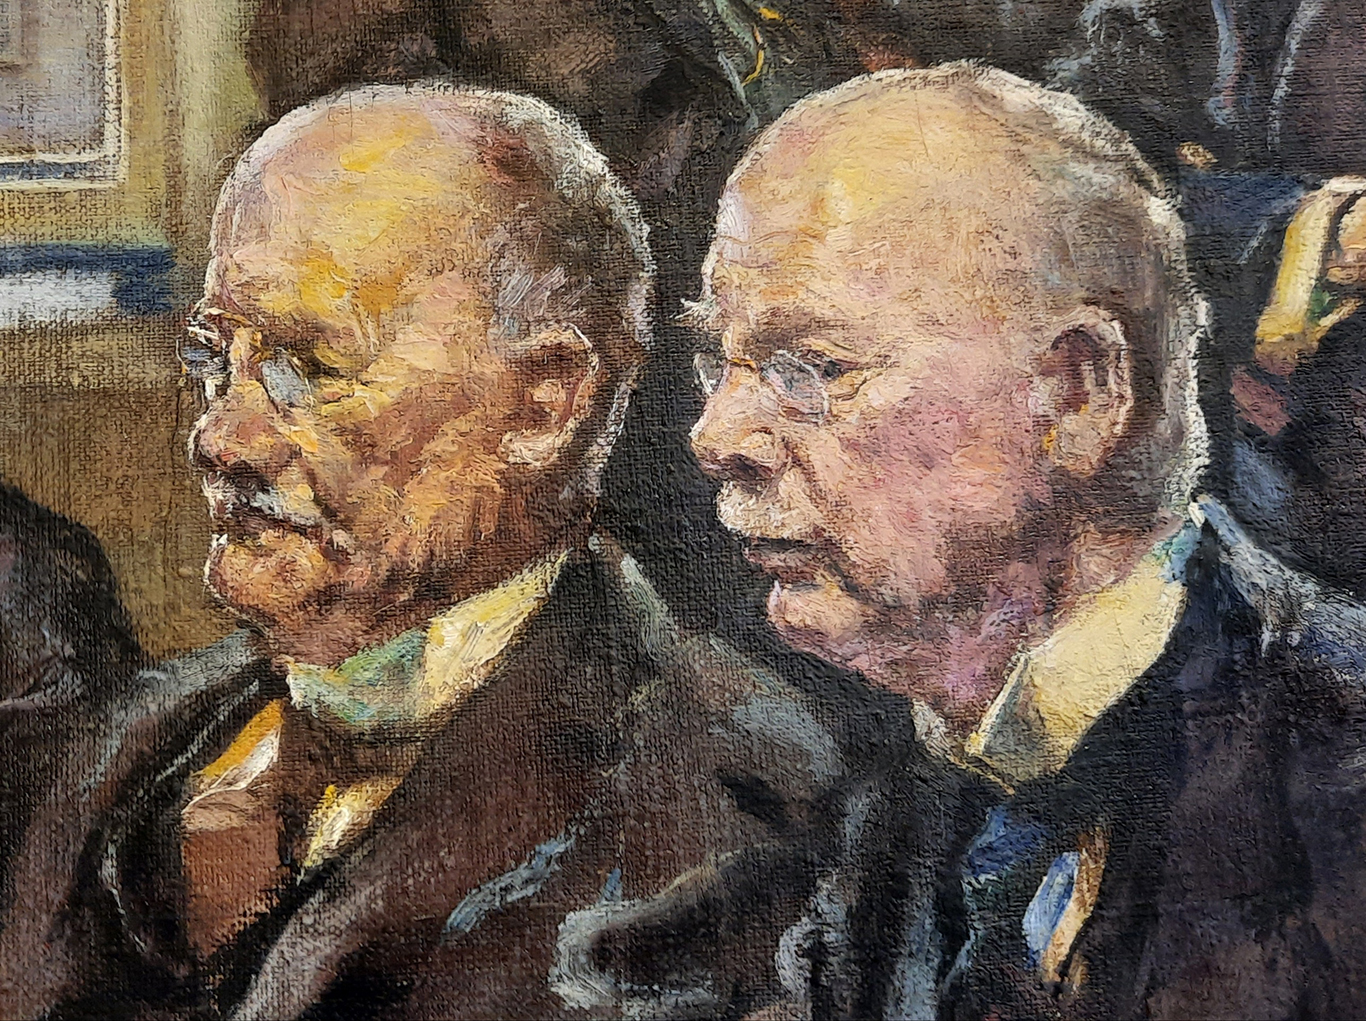 A cropped detail of the right-hand corner of the painting showing the faces of two older men in almost profile. The brushstrokes and the texture of the canvas are visible.